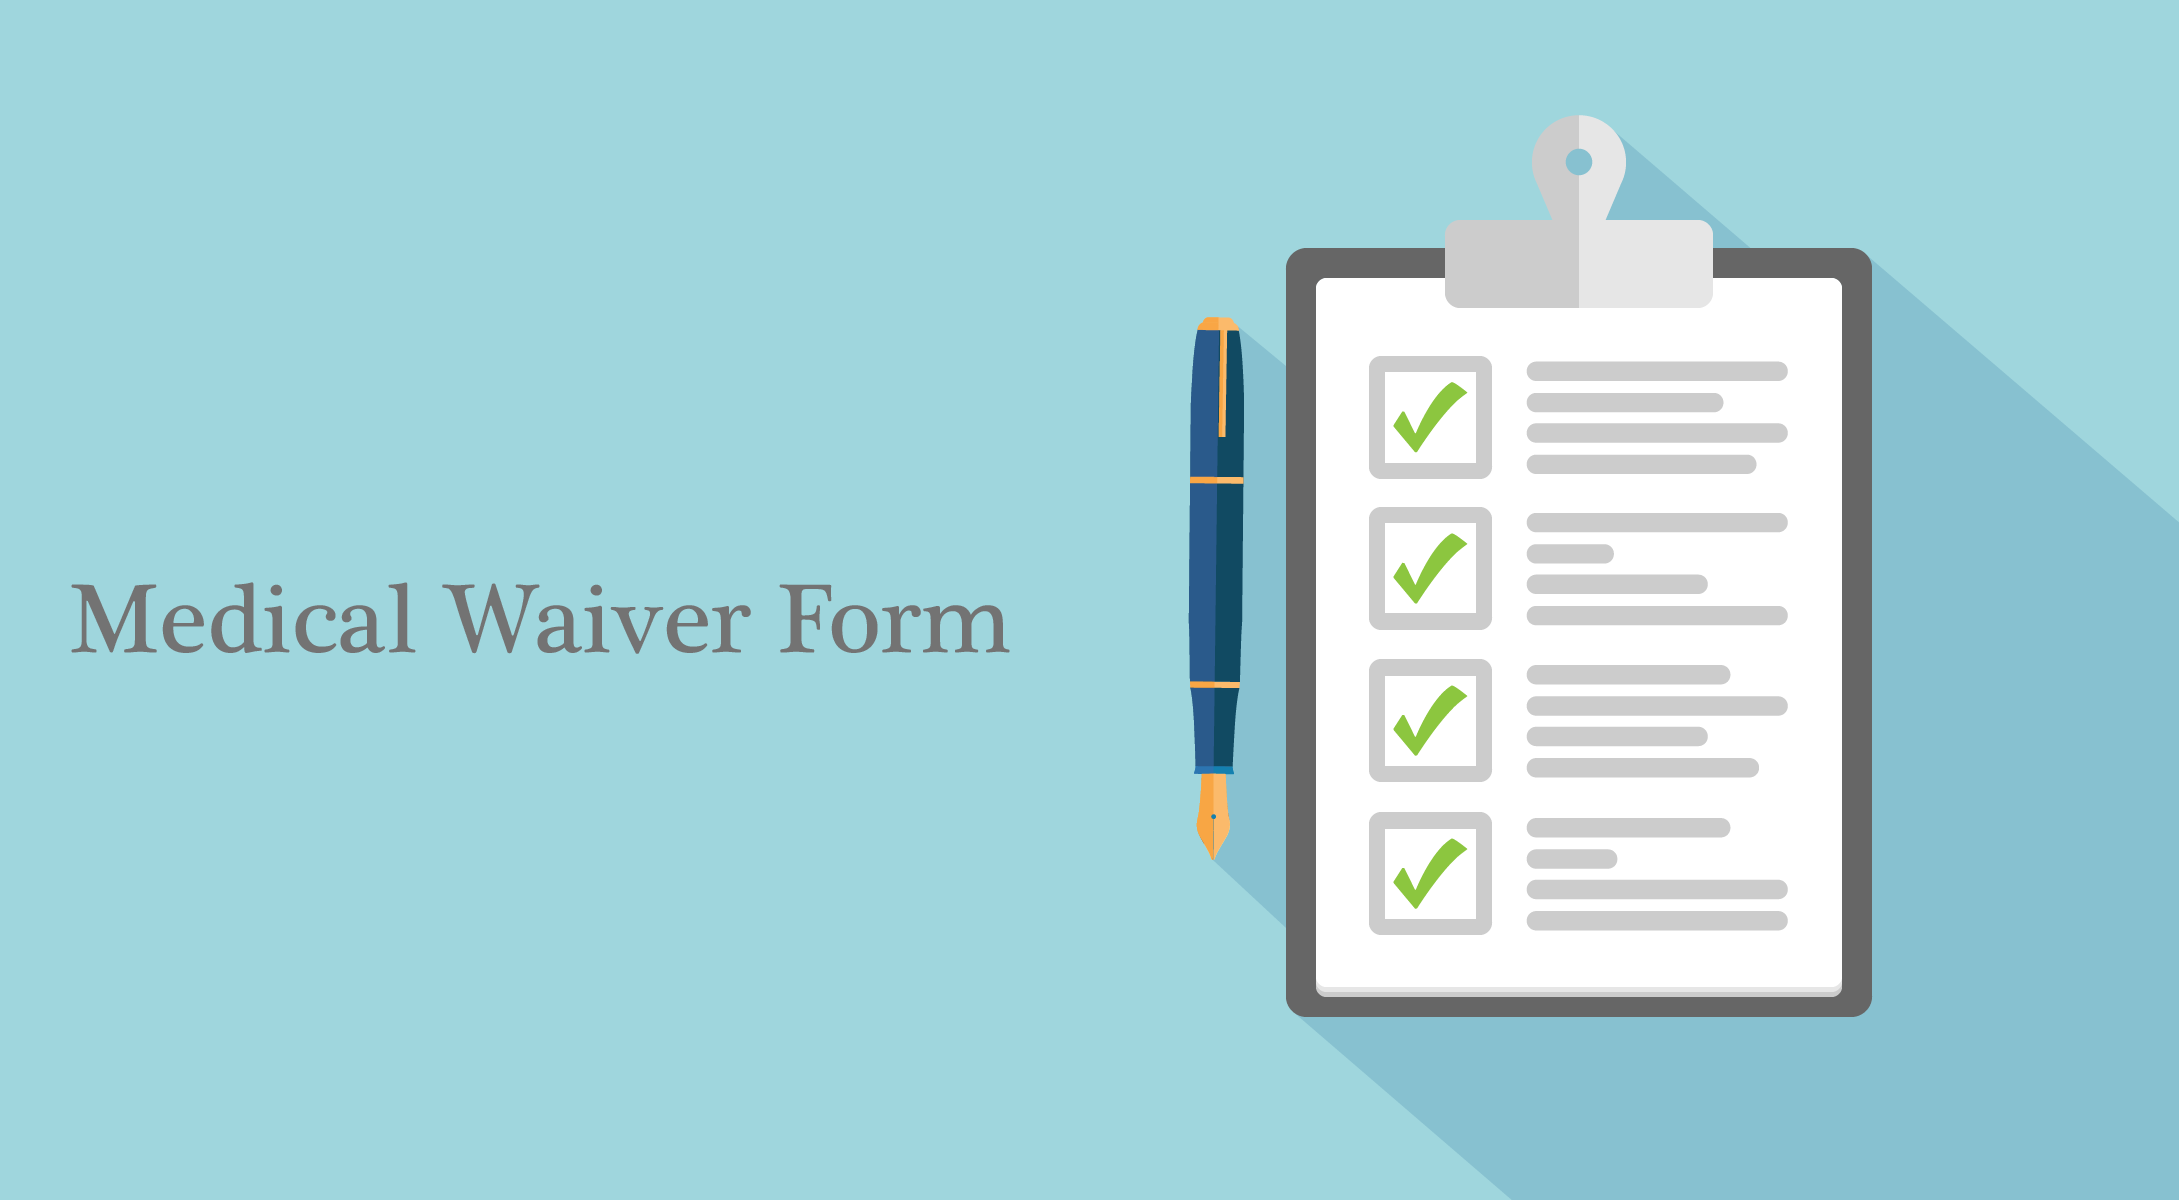 LIG- Medical Waiver Form Pic